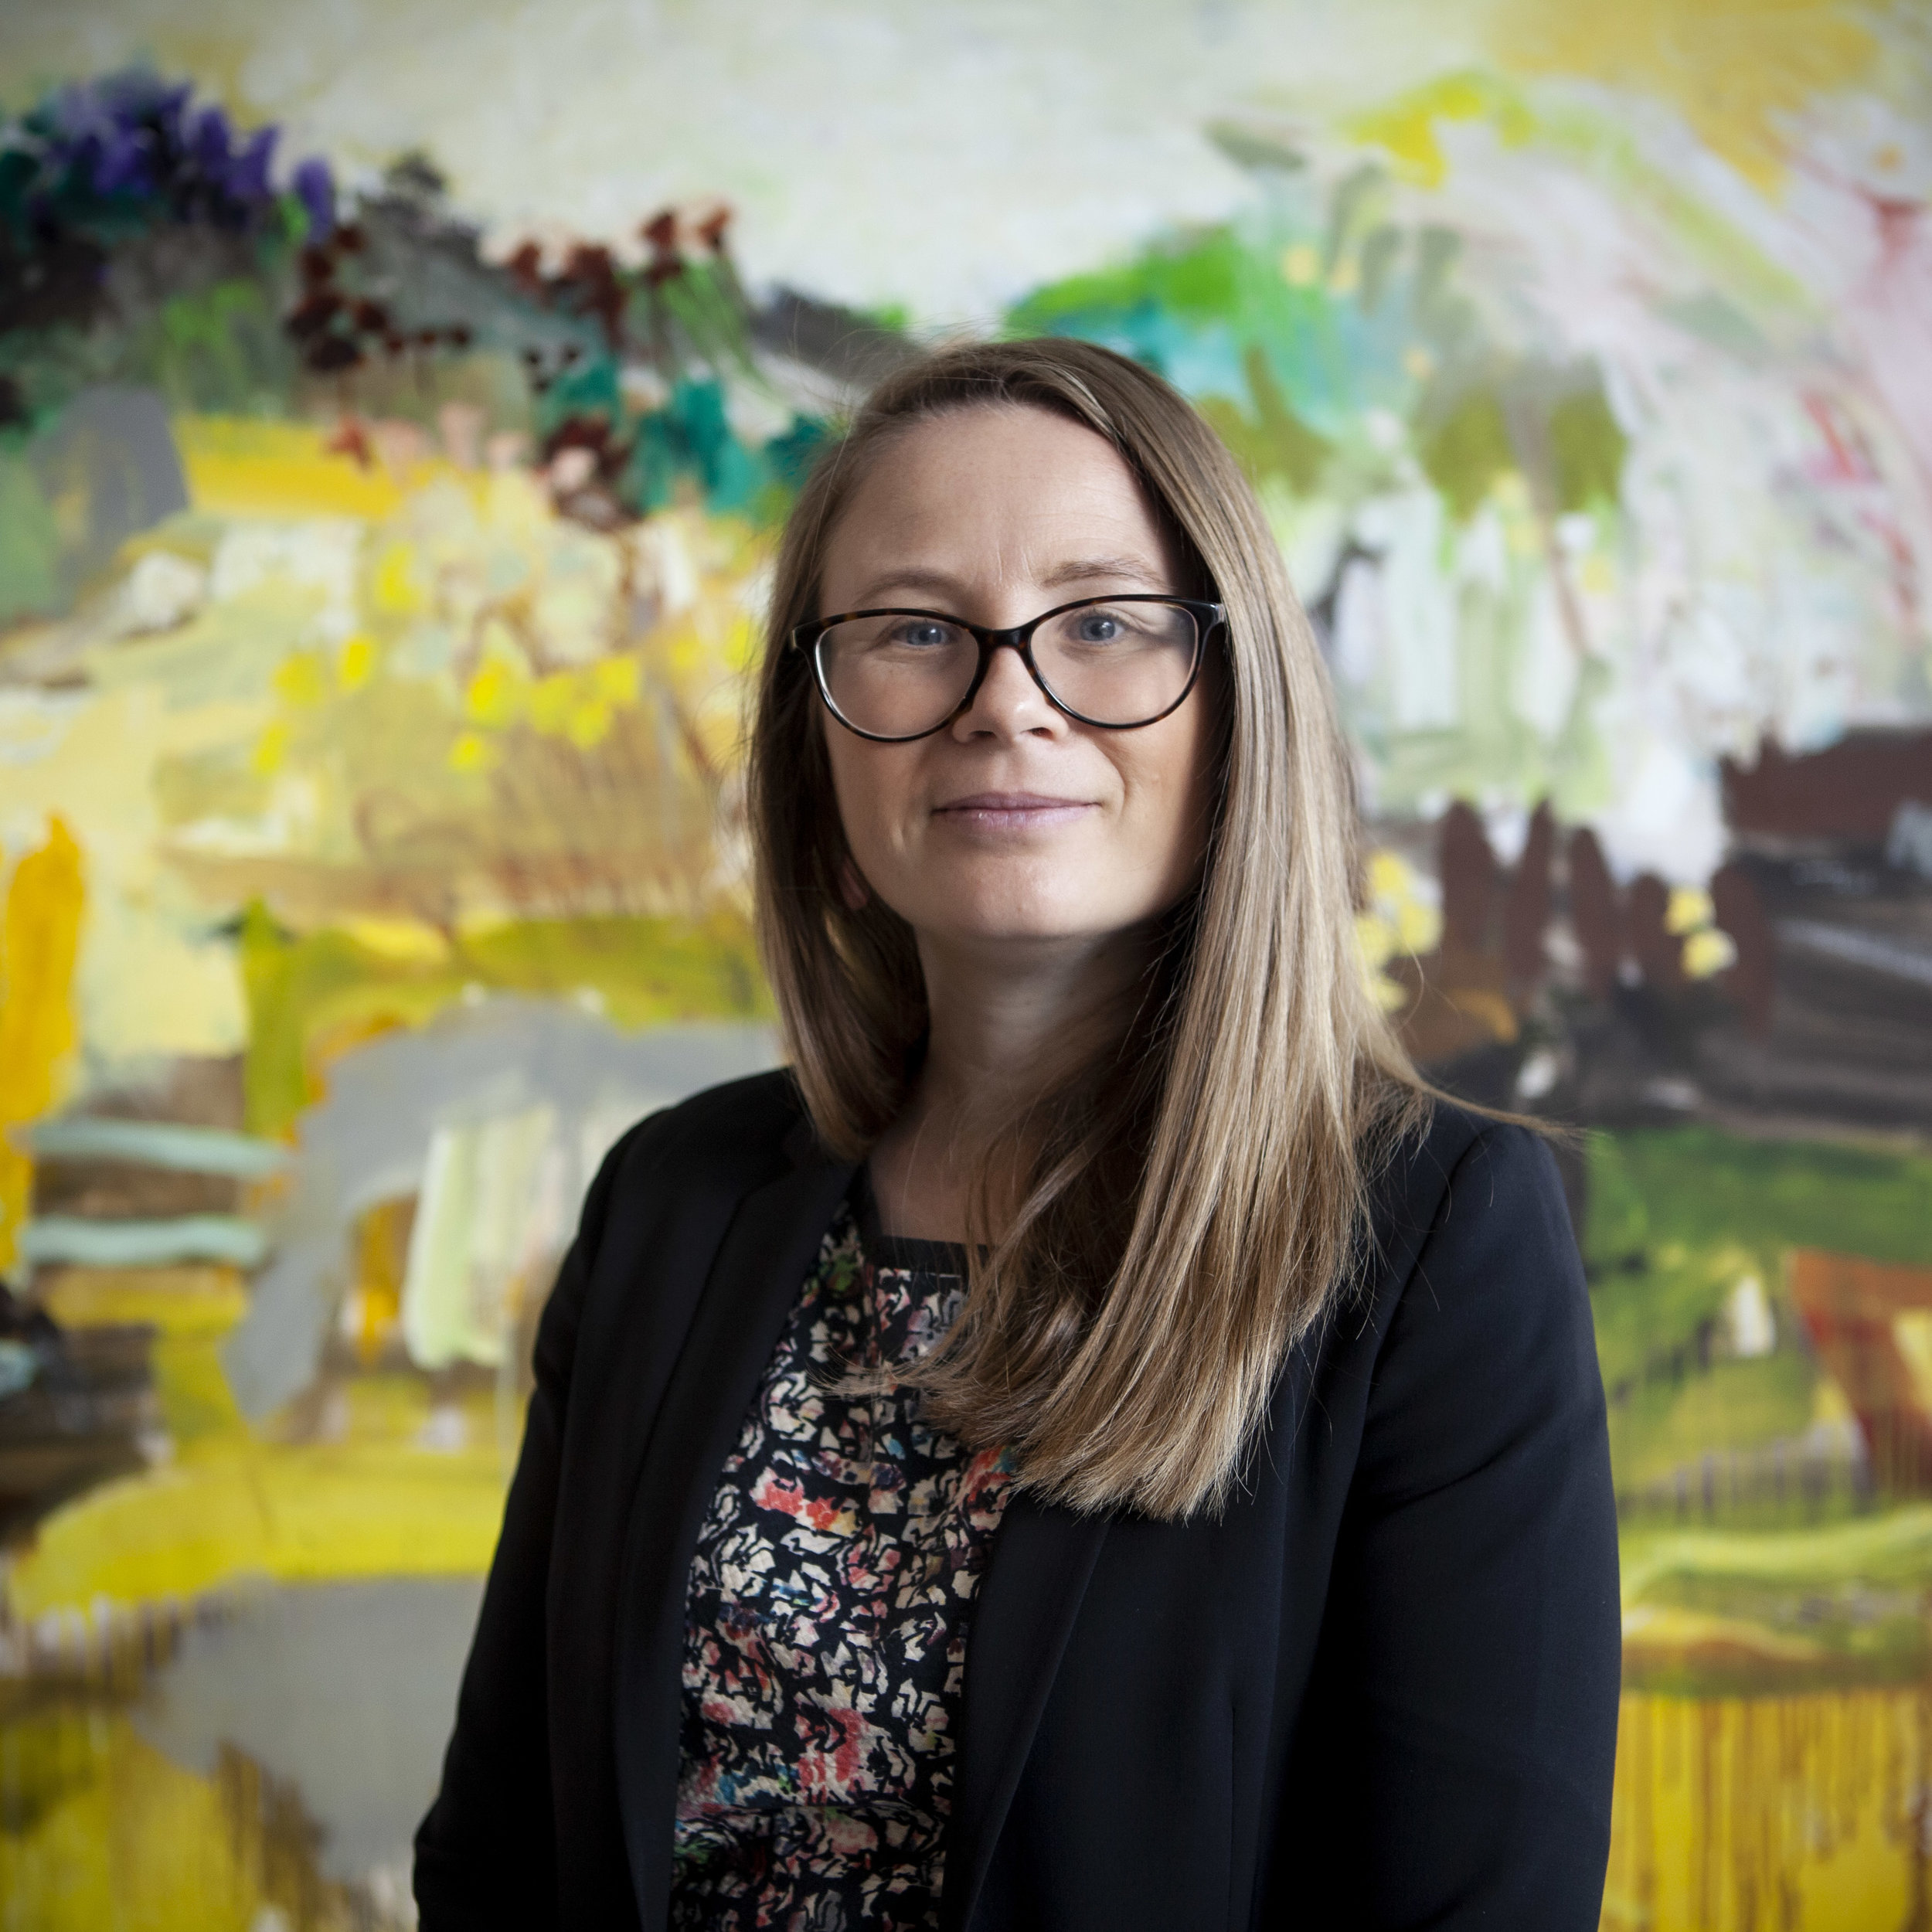 Emily Booth   Emily is a senior commercial (media and technology) lawyer at Holding Redlich. She advises start-ups, large advertising companies, software developers and television producers on intellectual property, contracts, advertising and privacy. She also does pro bono work for clients including the Victorian Women's Legal Service, No to Violence and several arts organisations.  Her passions include food, sport and adventuring, like hiking Mont Blanc, through the Julien Alps in Slovenia, and in Nepal. Emily's wish is that everyone feels welcome and included in our community, and gets equal opportunities to learn and contribute, and this (as well as the food!) was what attracted her to Free to Feed.